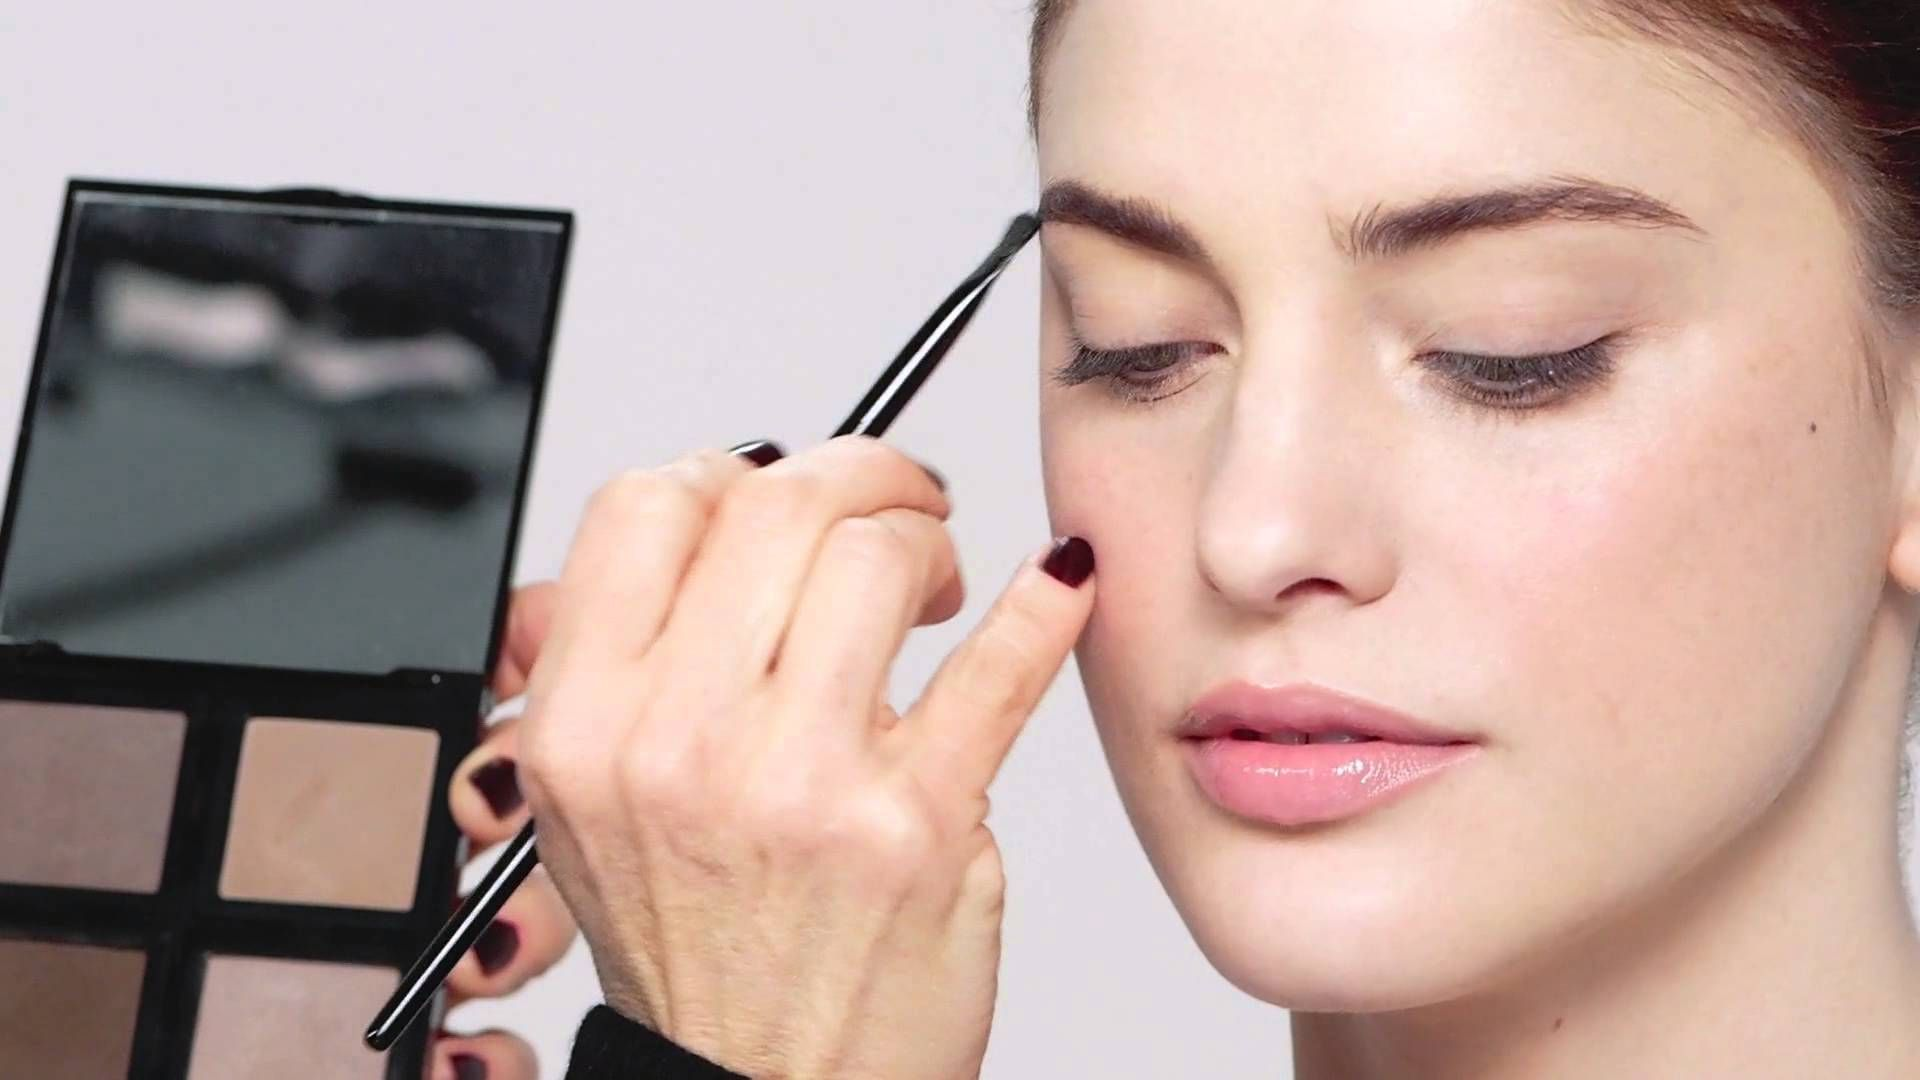 HowTo Ultimate Makeup Lesson In 10 Steps by Bobbi Brown